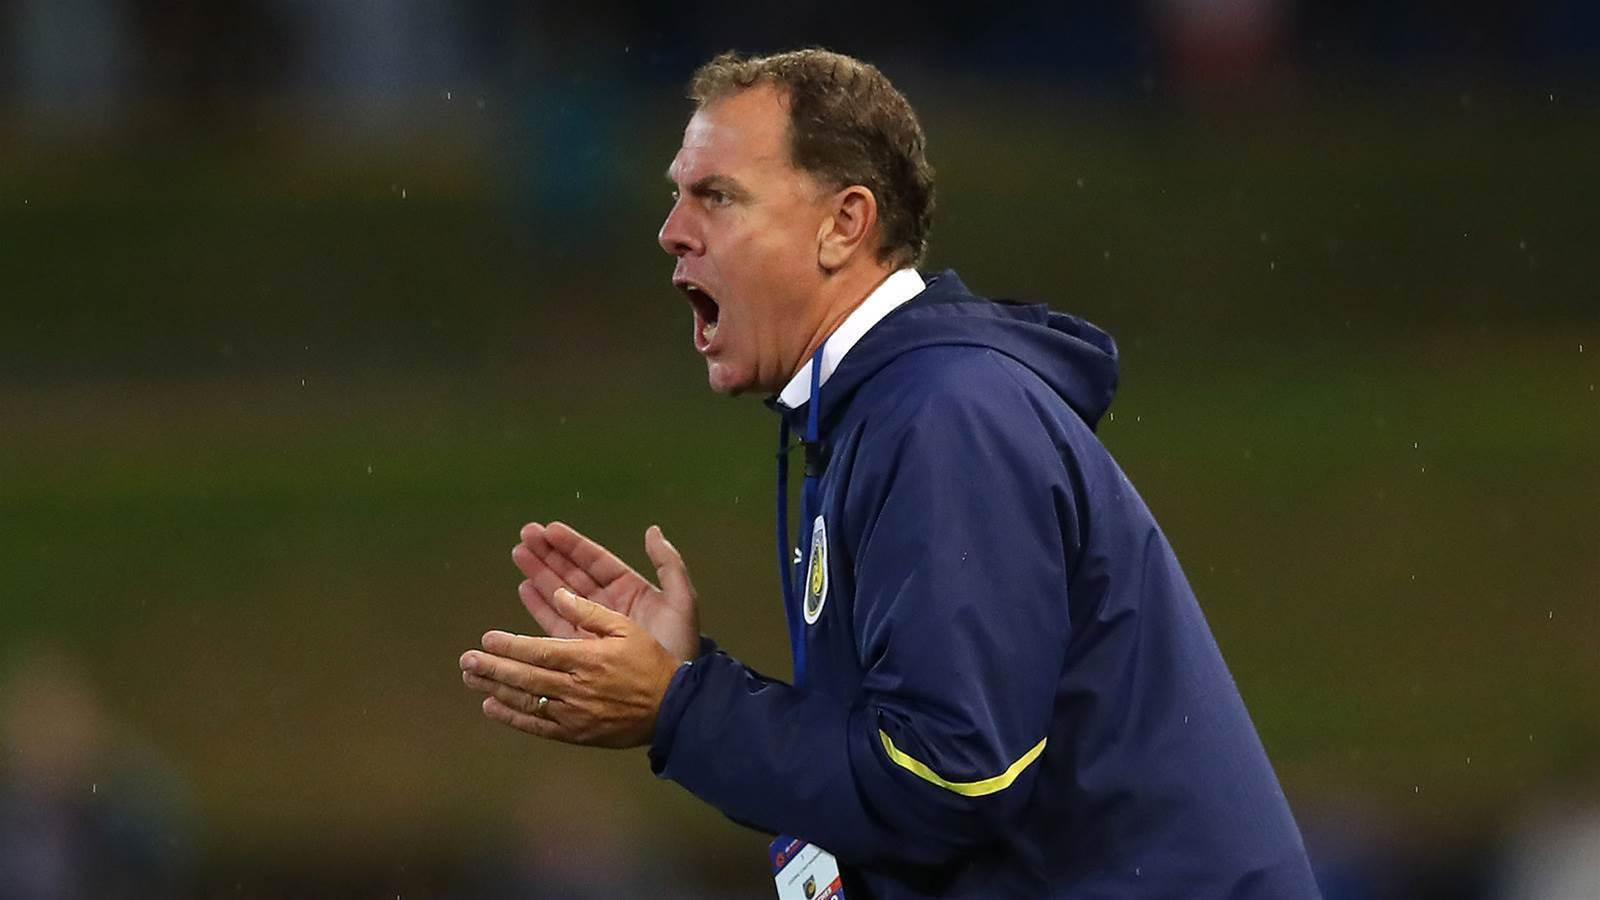 Stajcic's goals for the Mariners